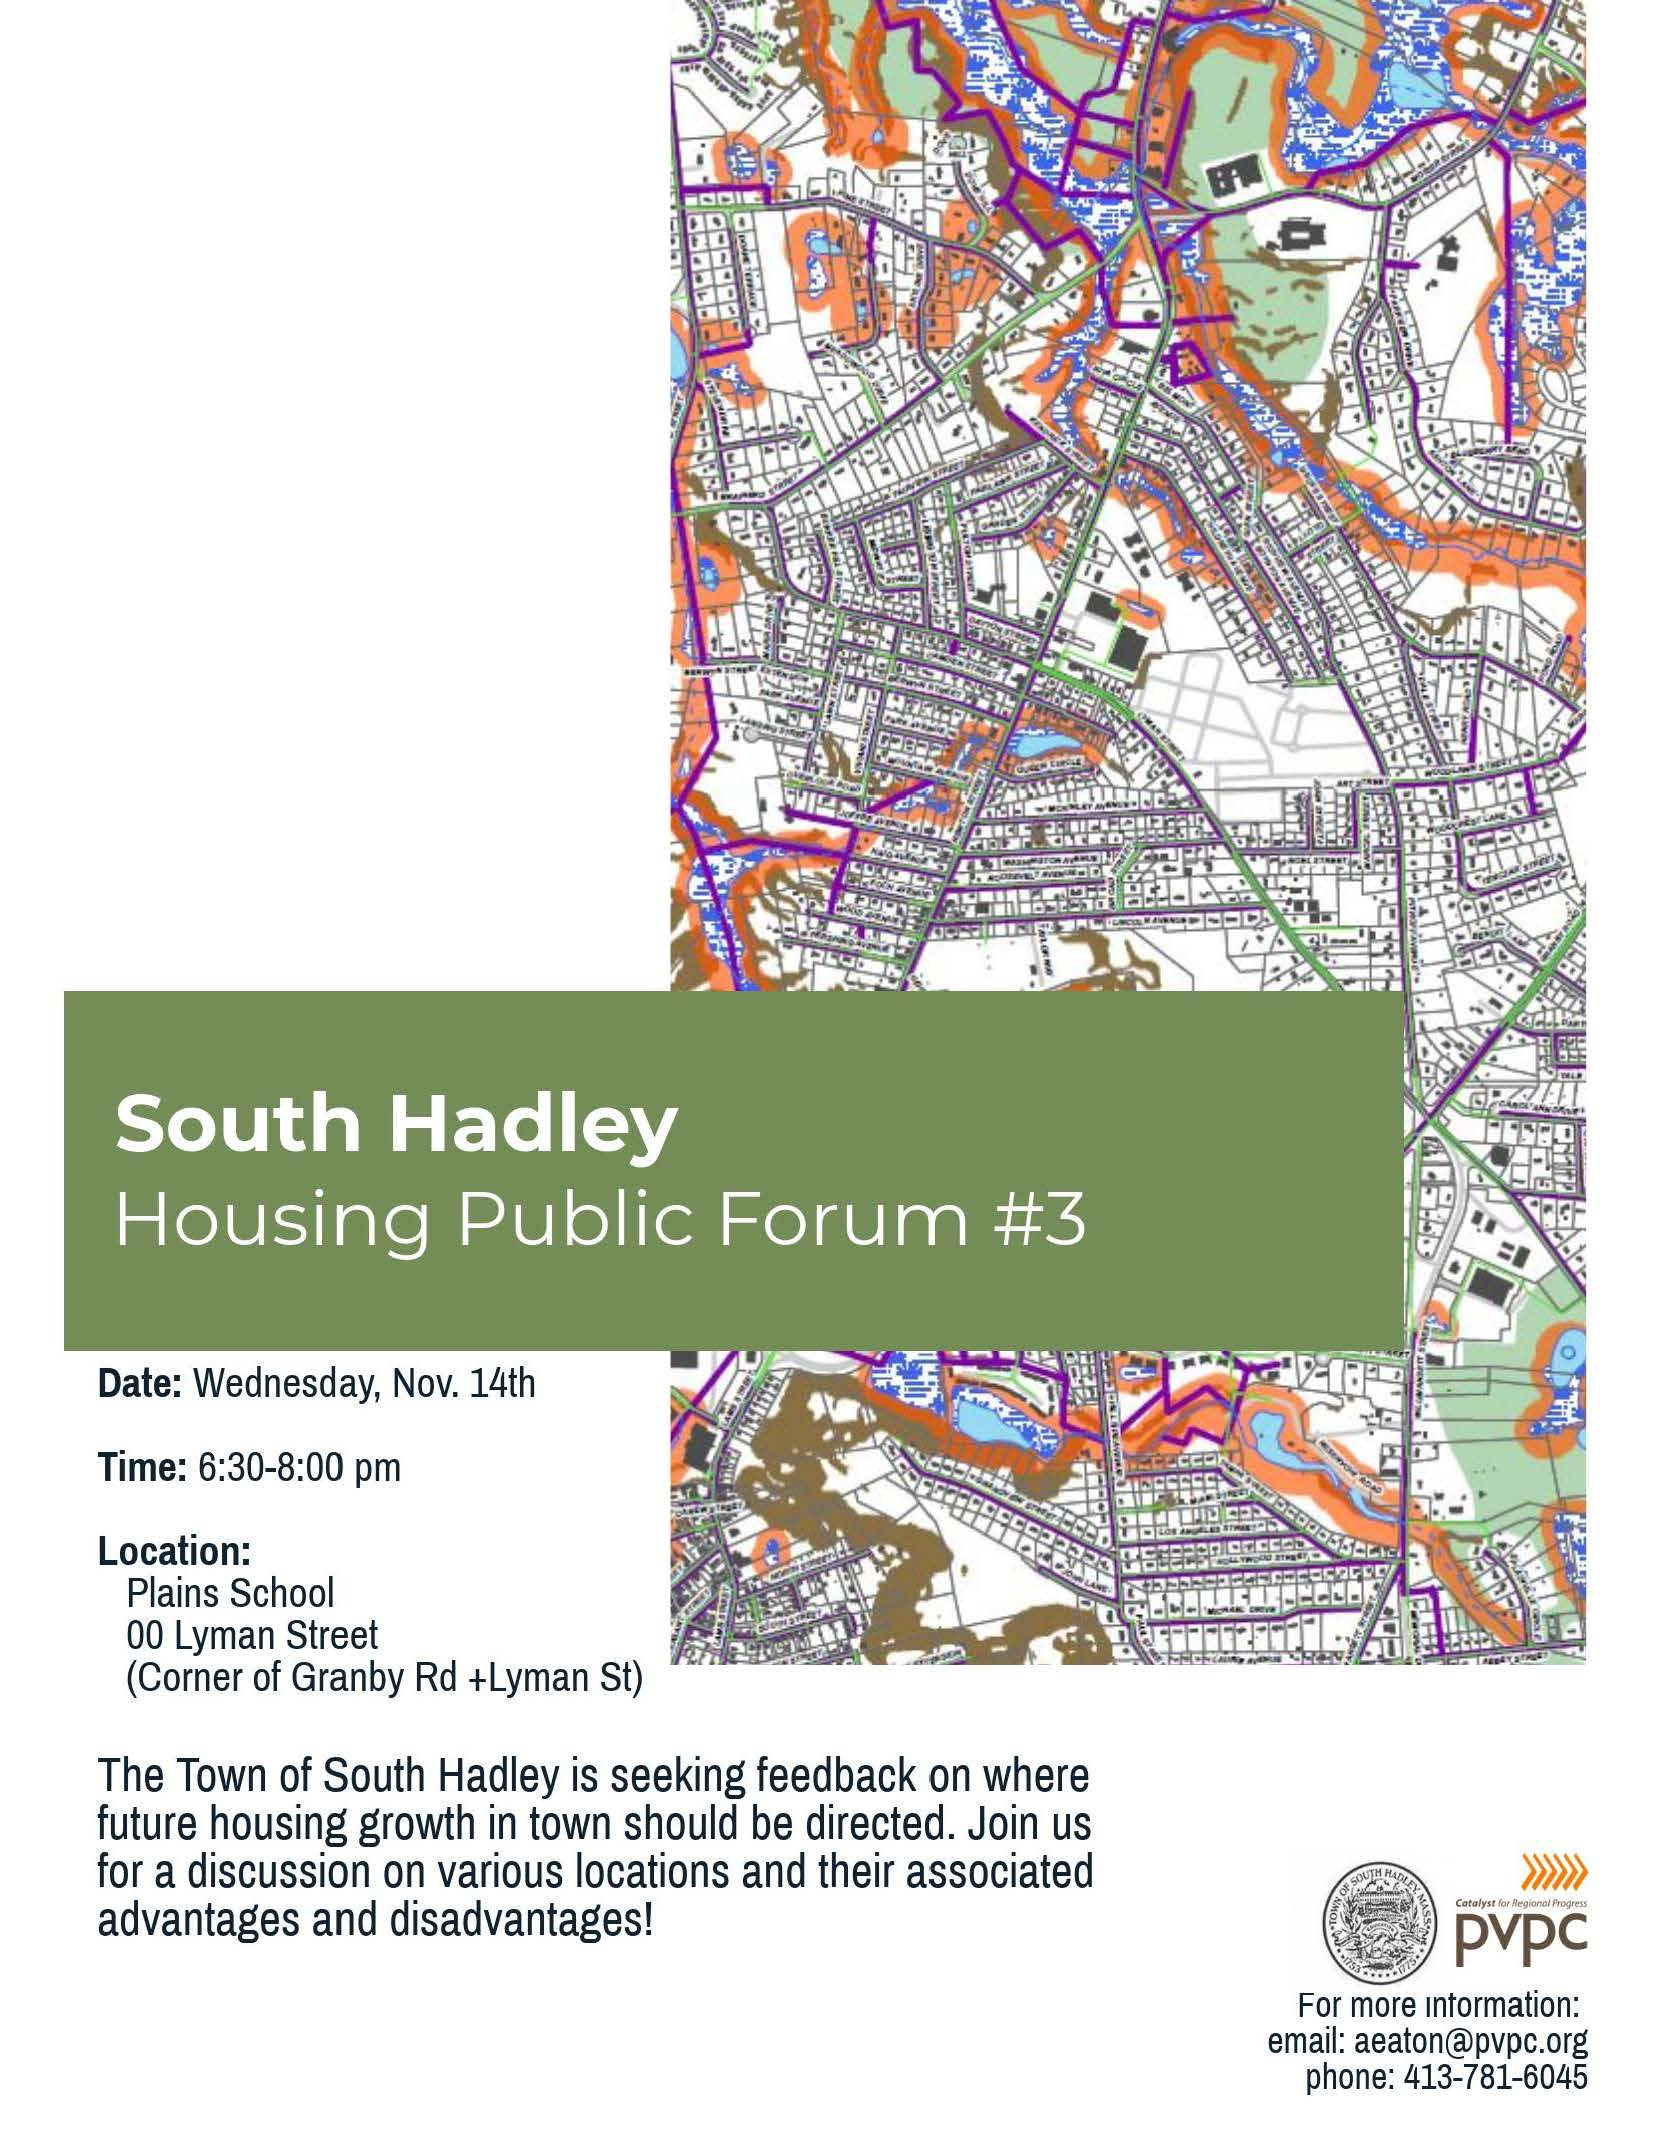 South Hadley Housing Public Forum 3